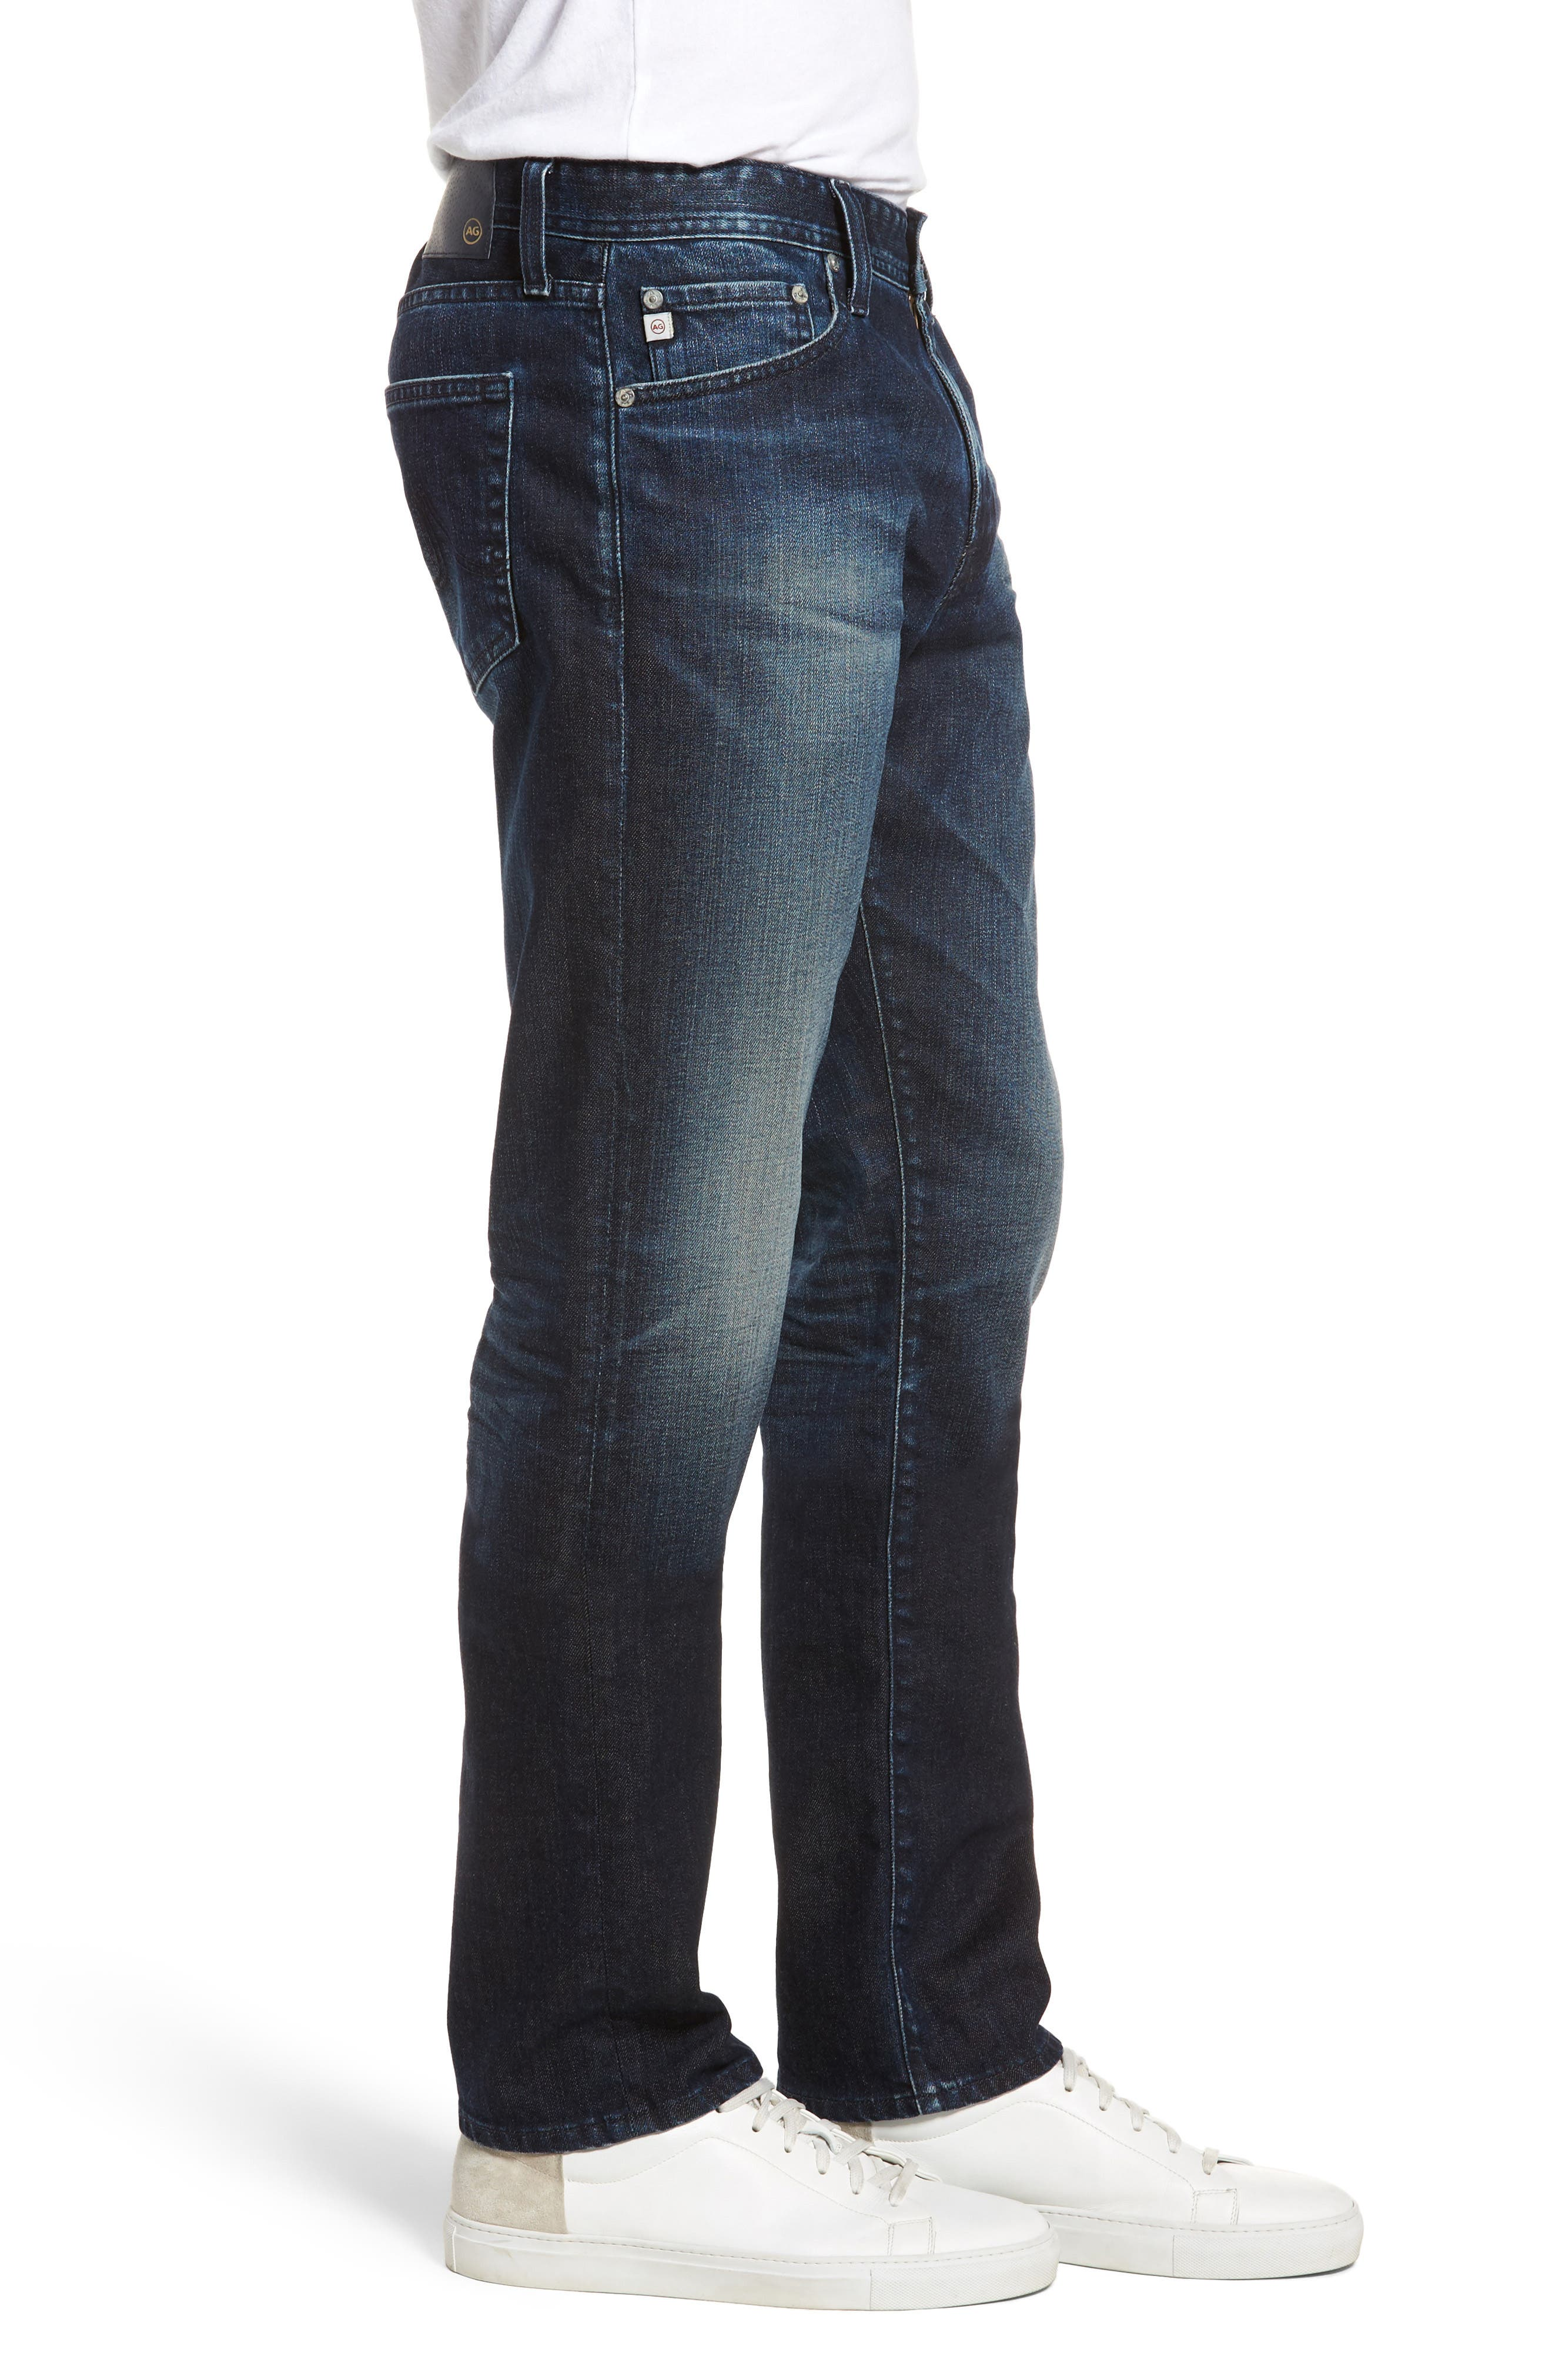 Everett Slim Straight Fit Jeans,                             Alternate thumbnail 3, color,                             3 Years Trentwood